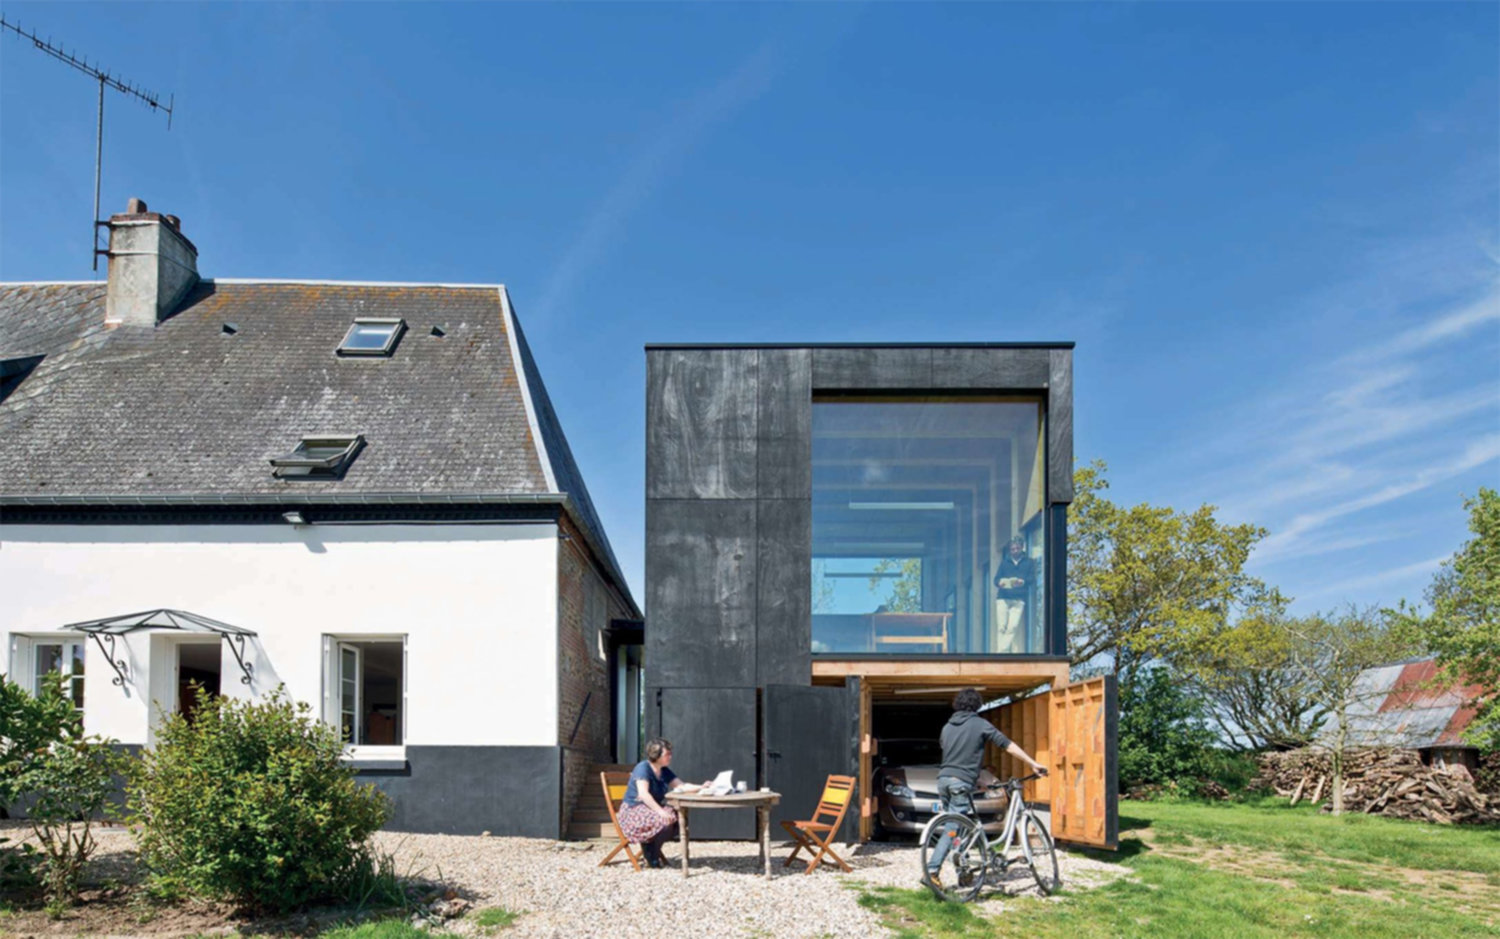 Extension normande par l'architecte Antonin Ziegler